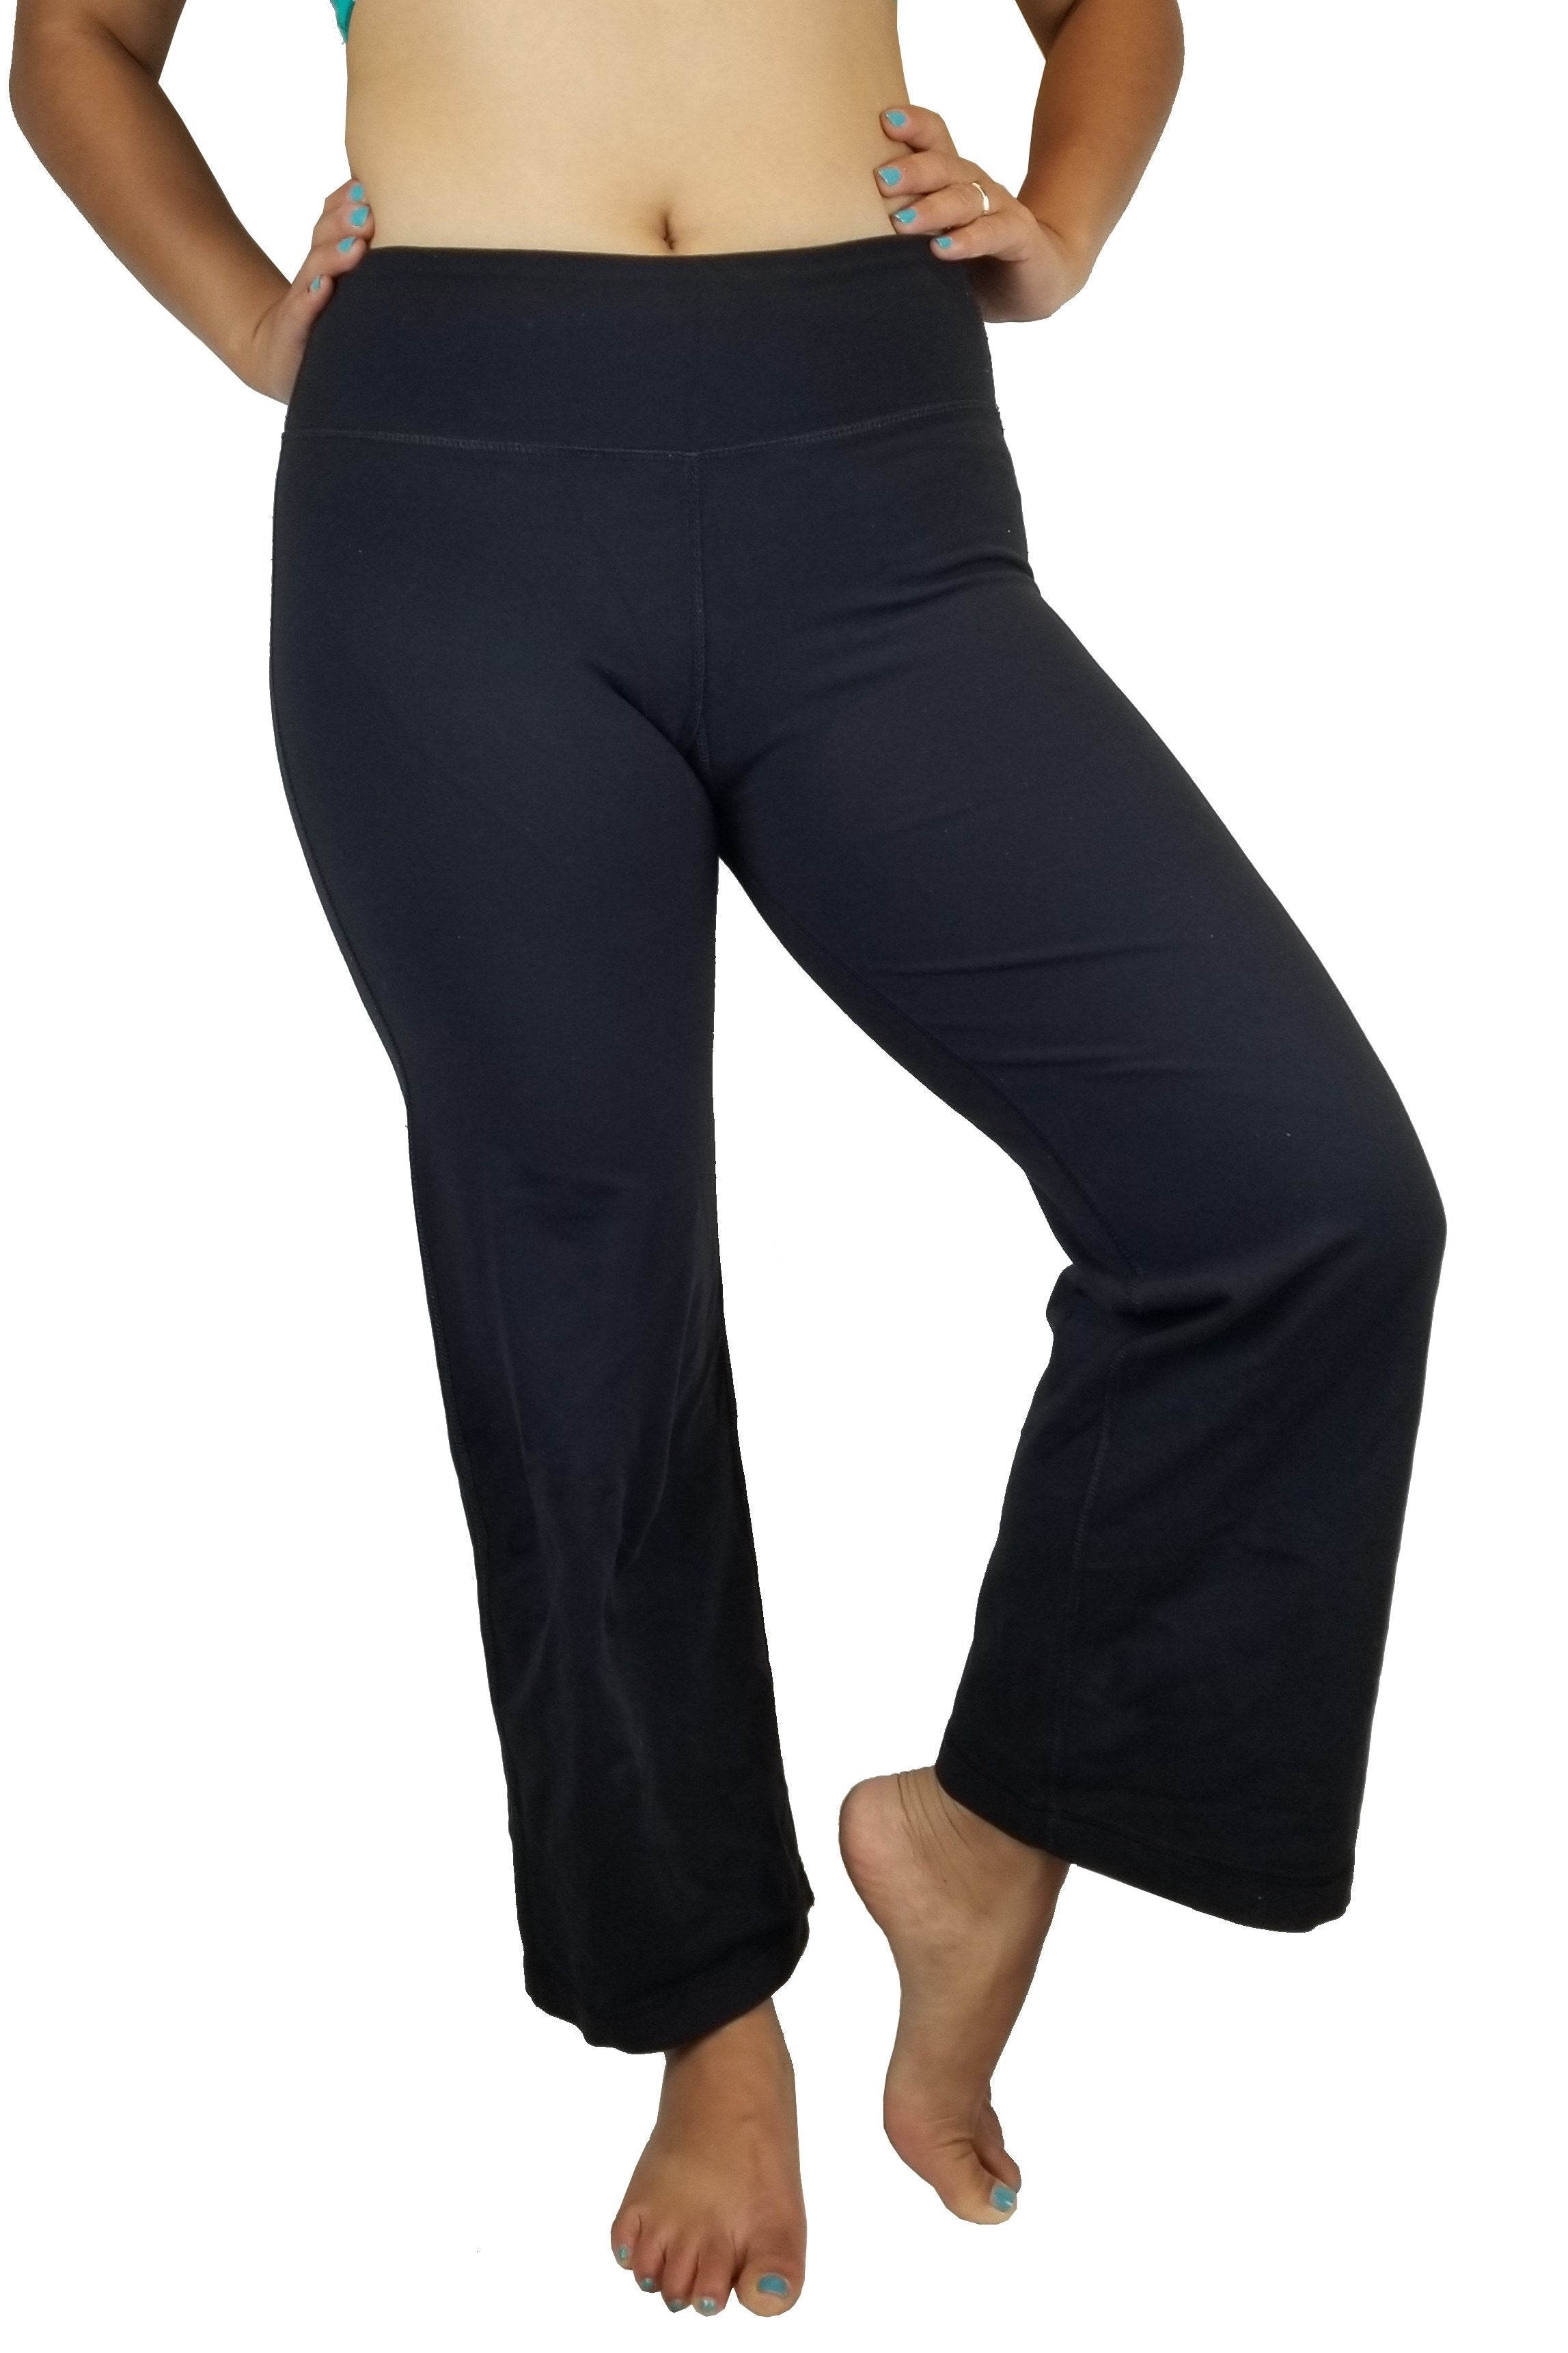 Lululemon flare yoga pants, Flare design for comfort and breathability. Less of a Vancouver street wear? Lululemon size 2. https://info.lululemon.com/help/size-chart, Black, Nylon, Lycra, and Spandex, women's Activewear, women's Black Activewear, Lululemon women's Activewear, Yoga, yoga pants, women's athletic wear, women's work out clothes, women's comfortable pants, fitness, fit